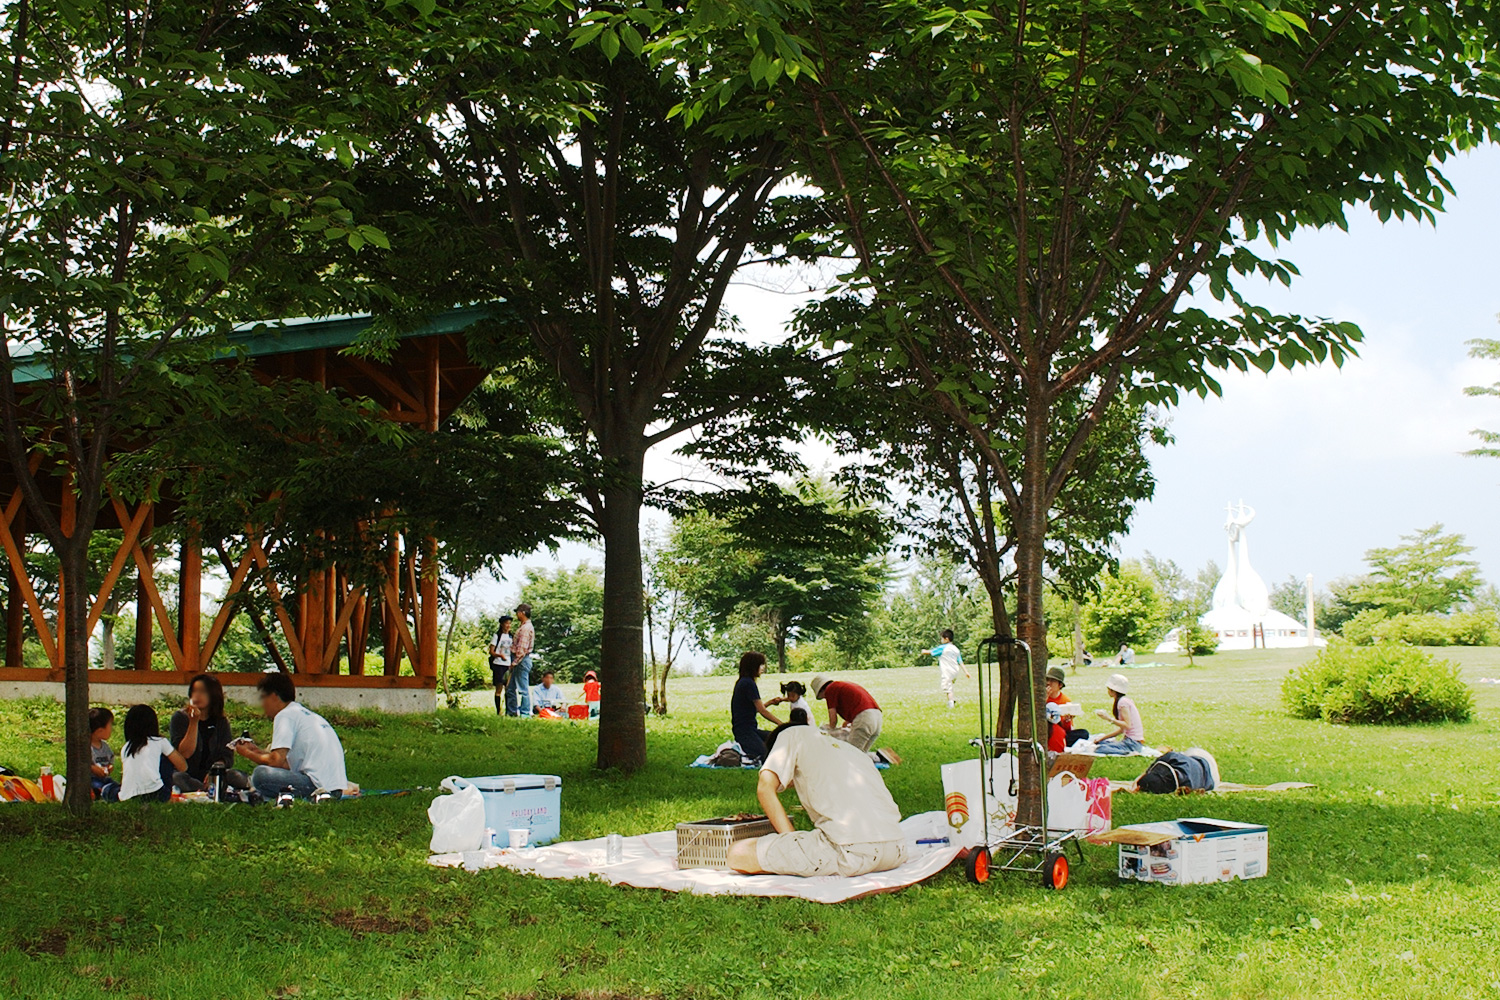 Picnic in Fujimi Lake Park